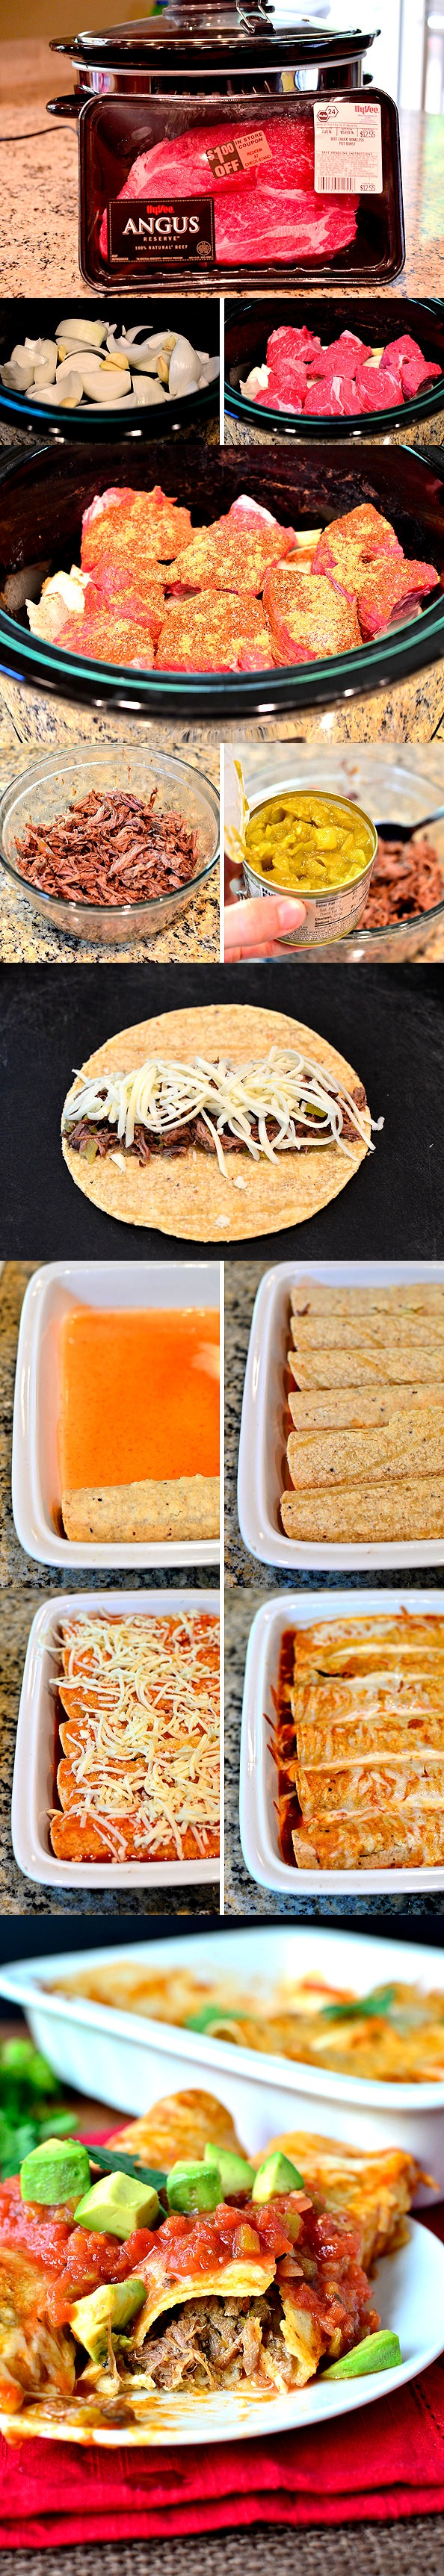 Crock Pot Shredded Beef Enchiladas